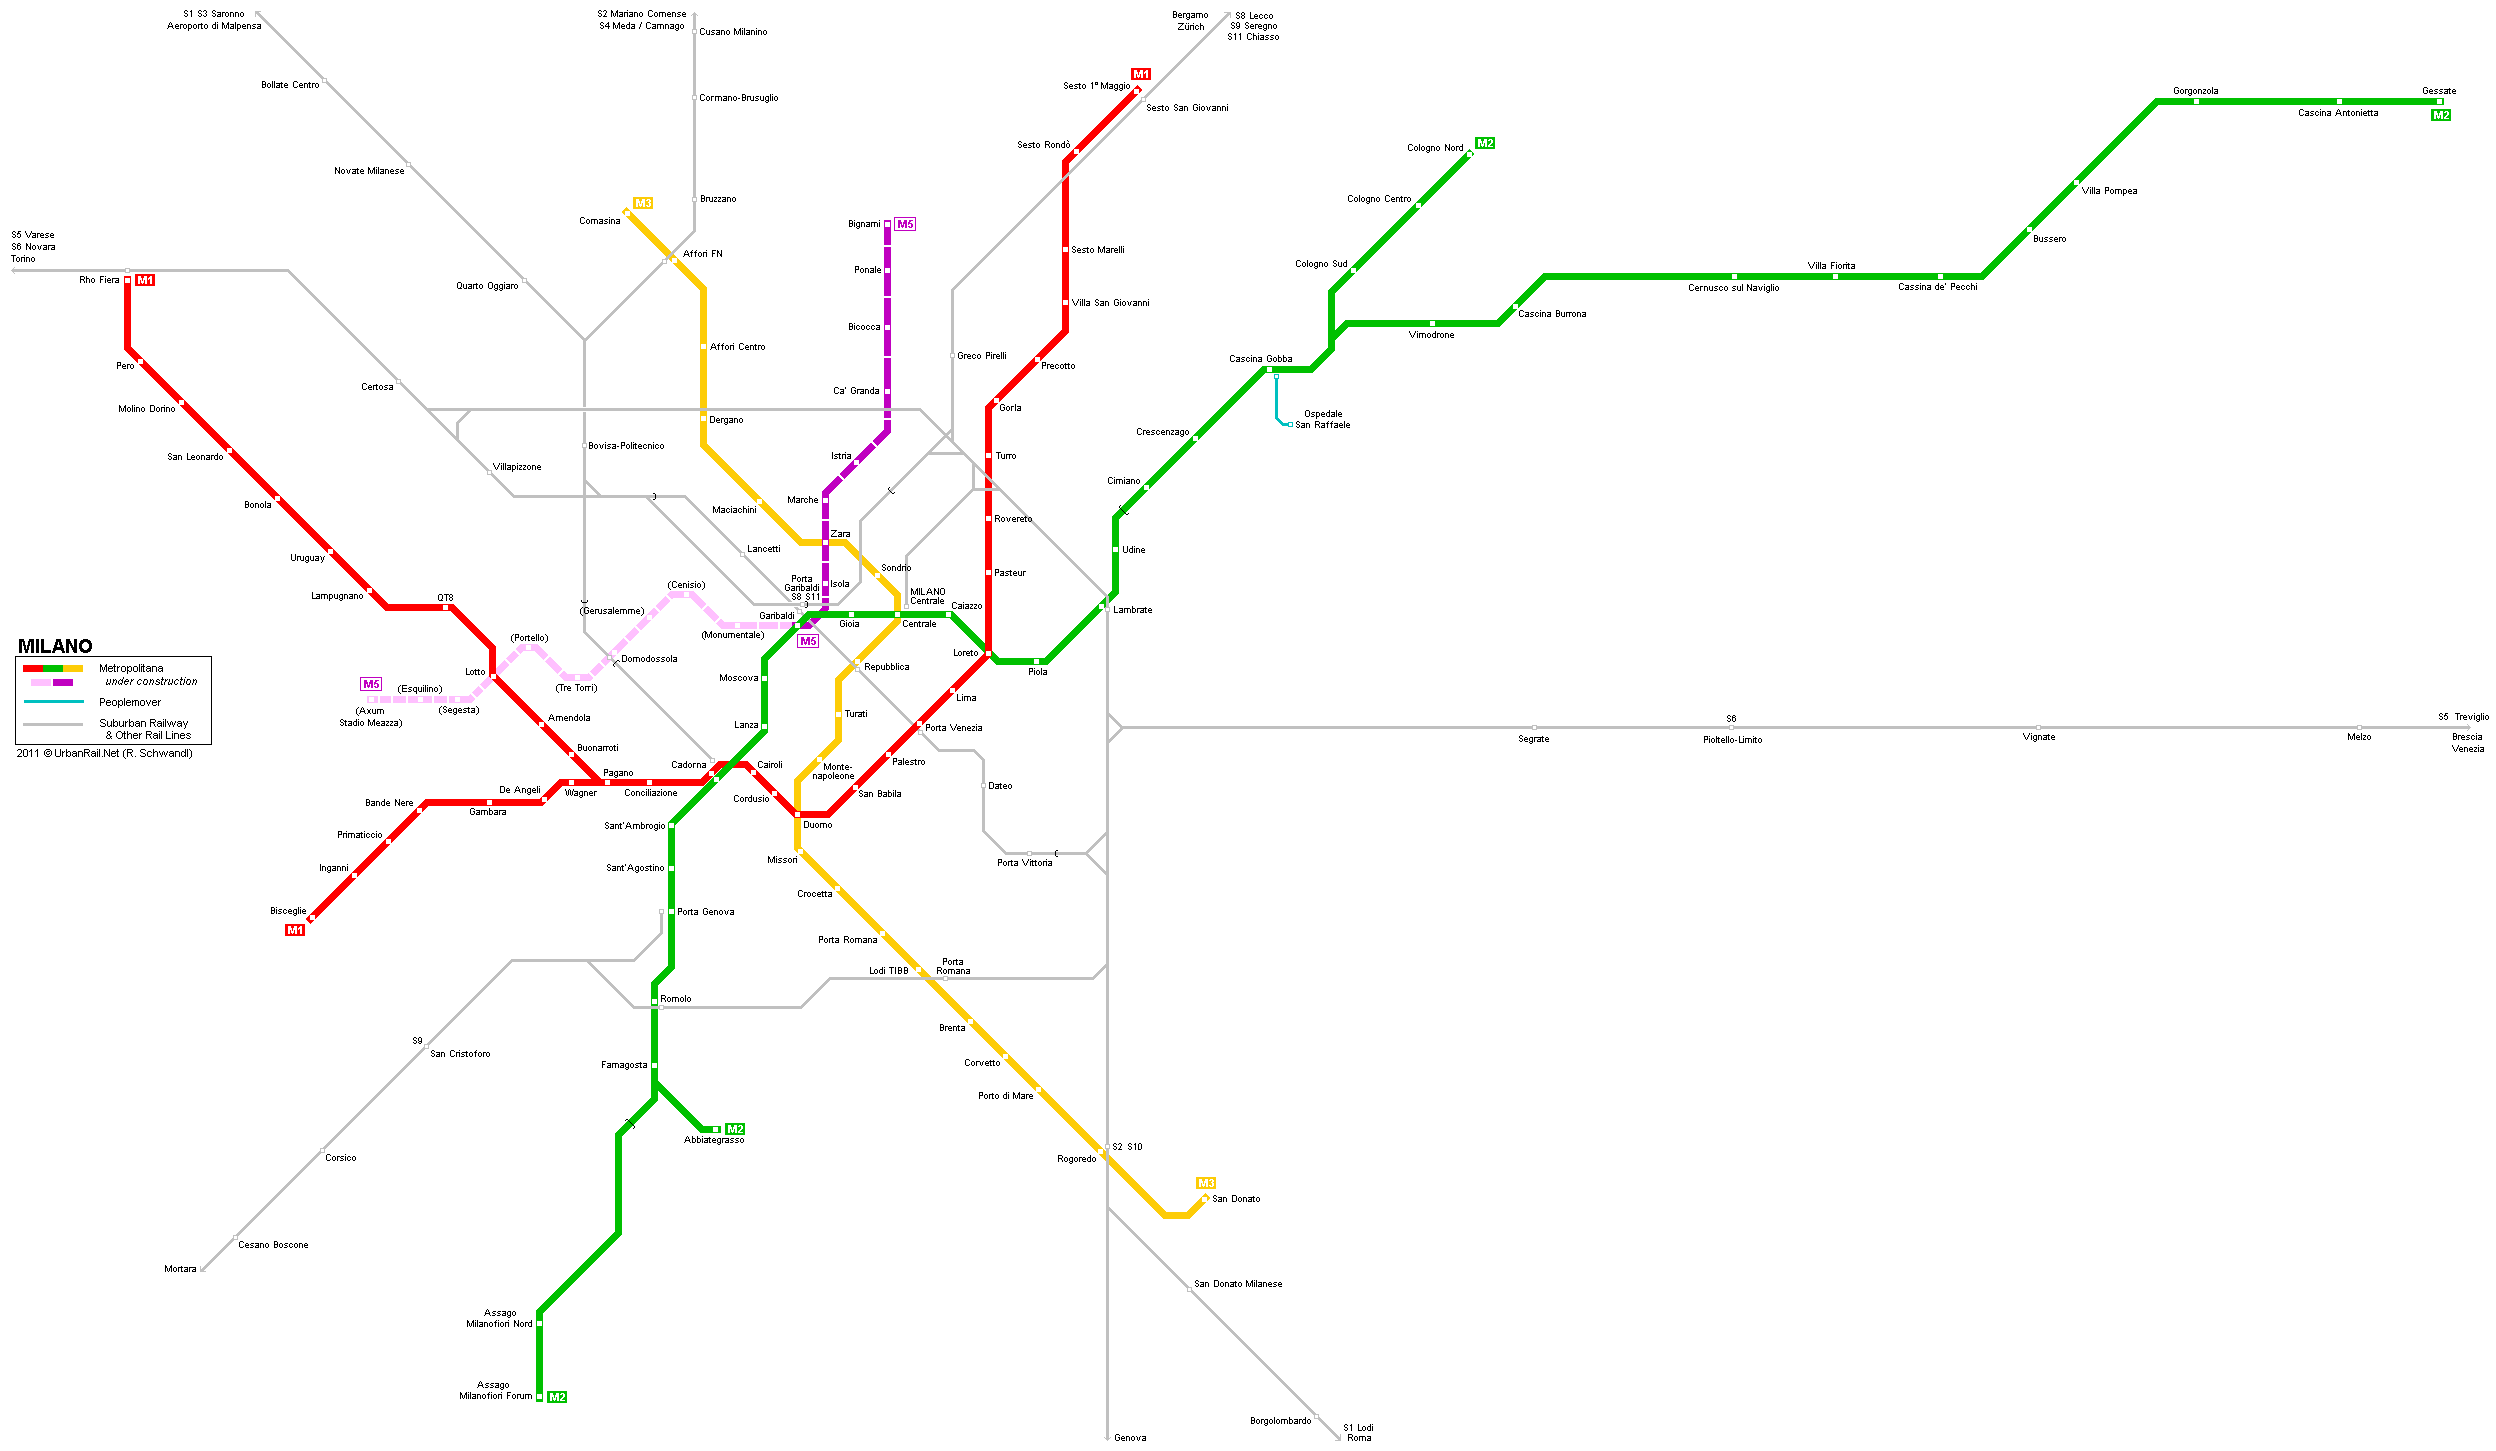 Tram map of Milan